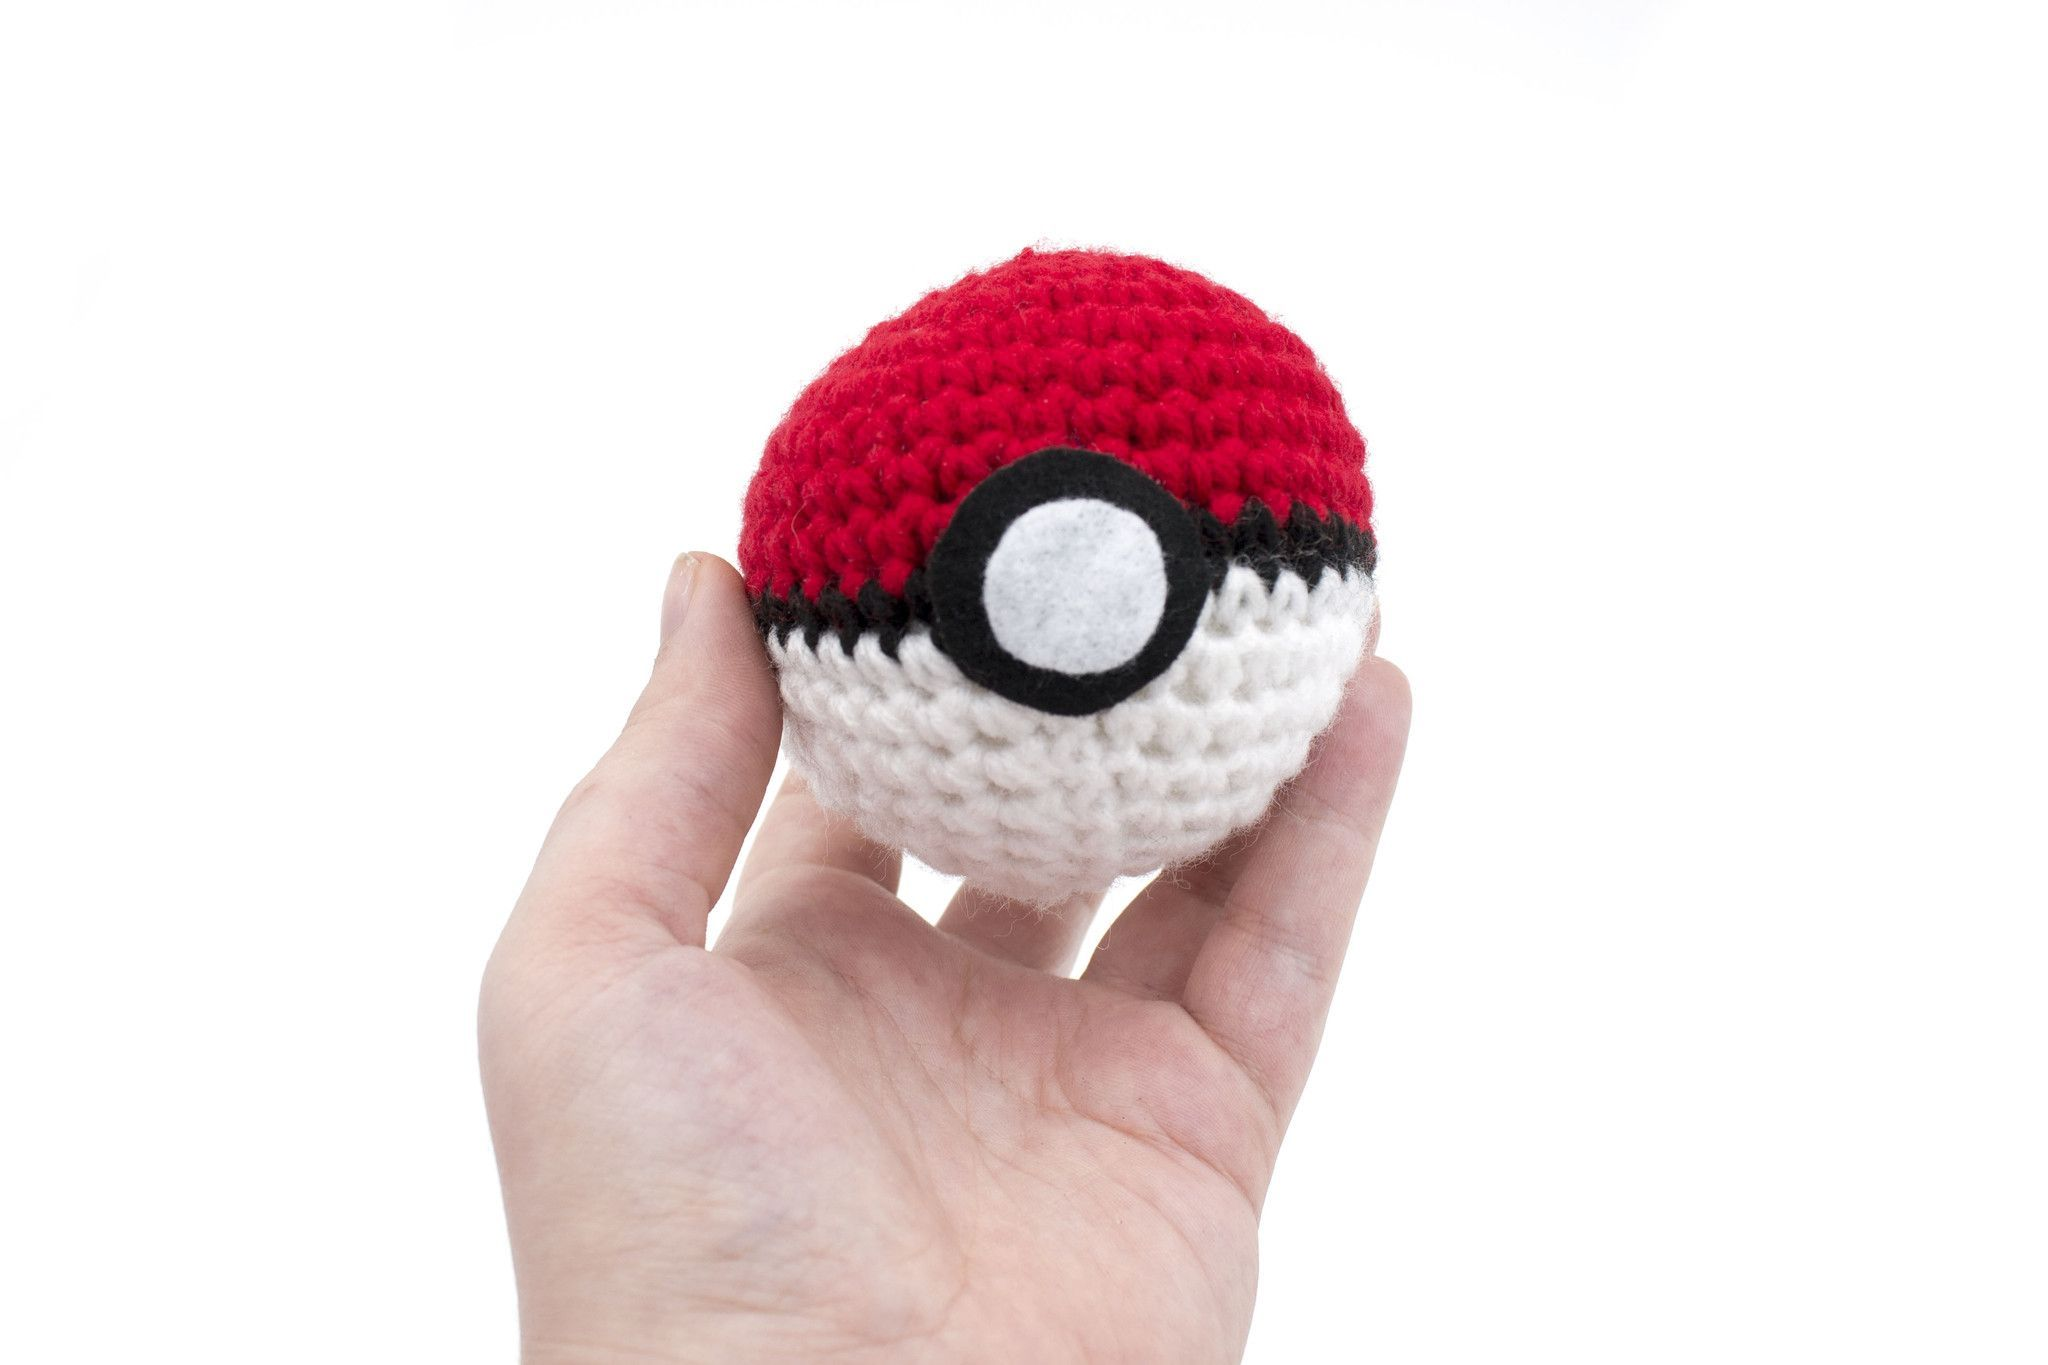 Pokeball Amigurumi Plush Toy | crochet | Pinterest